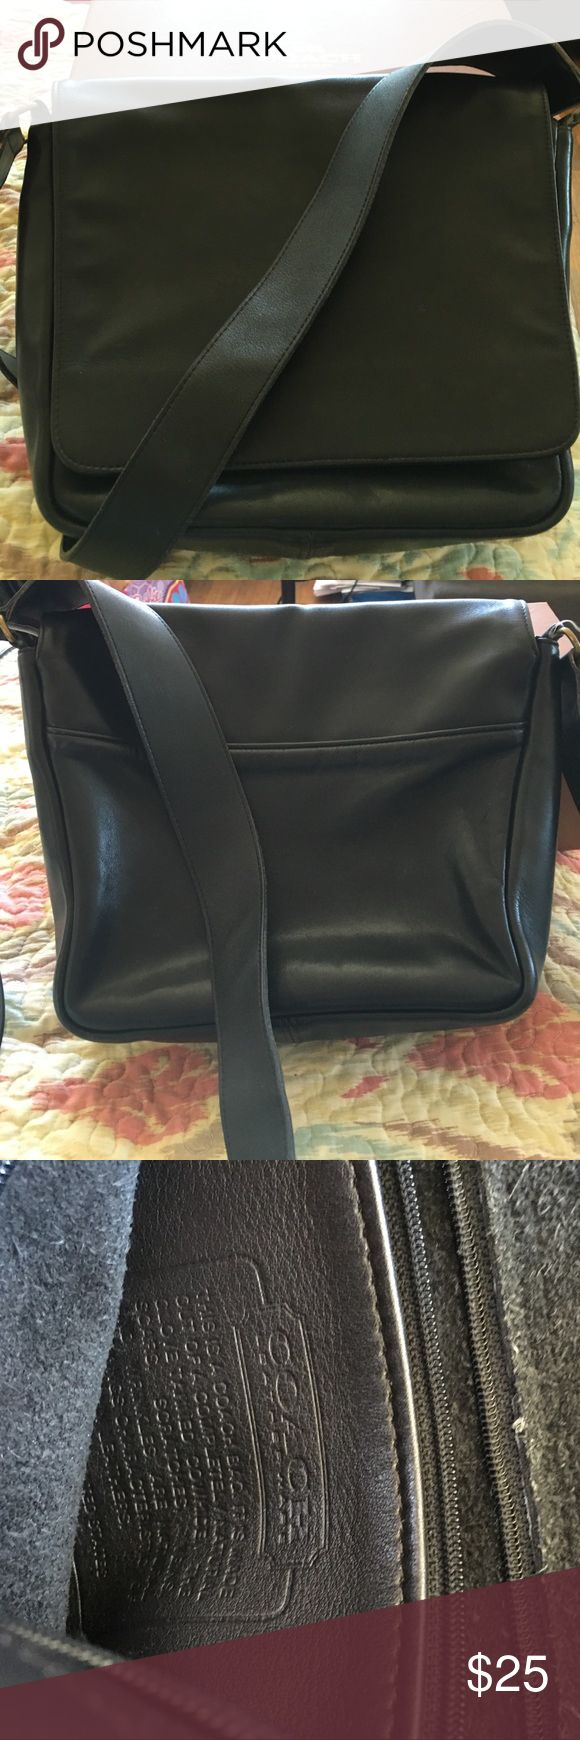 VINTAGE BLACK COACH BAG ORIGINAL LARGE LEATHER FLAP FRONT VERY GOOD CONDITION HAS FEW MINOR SCRATCHES CONSISTENT WITH AGE NO 1769-328 MADE IN USA NI HANG TAG Coach Bags Shoulder Bags